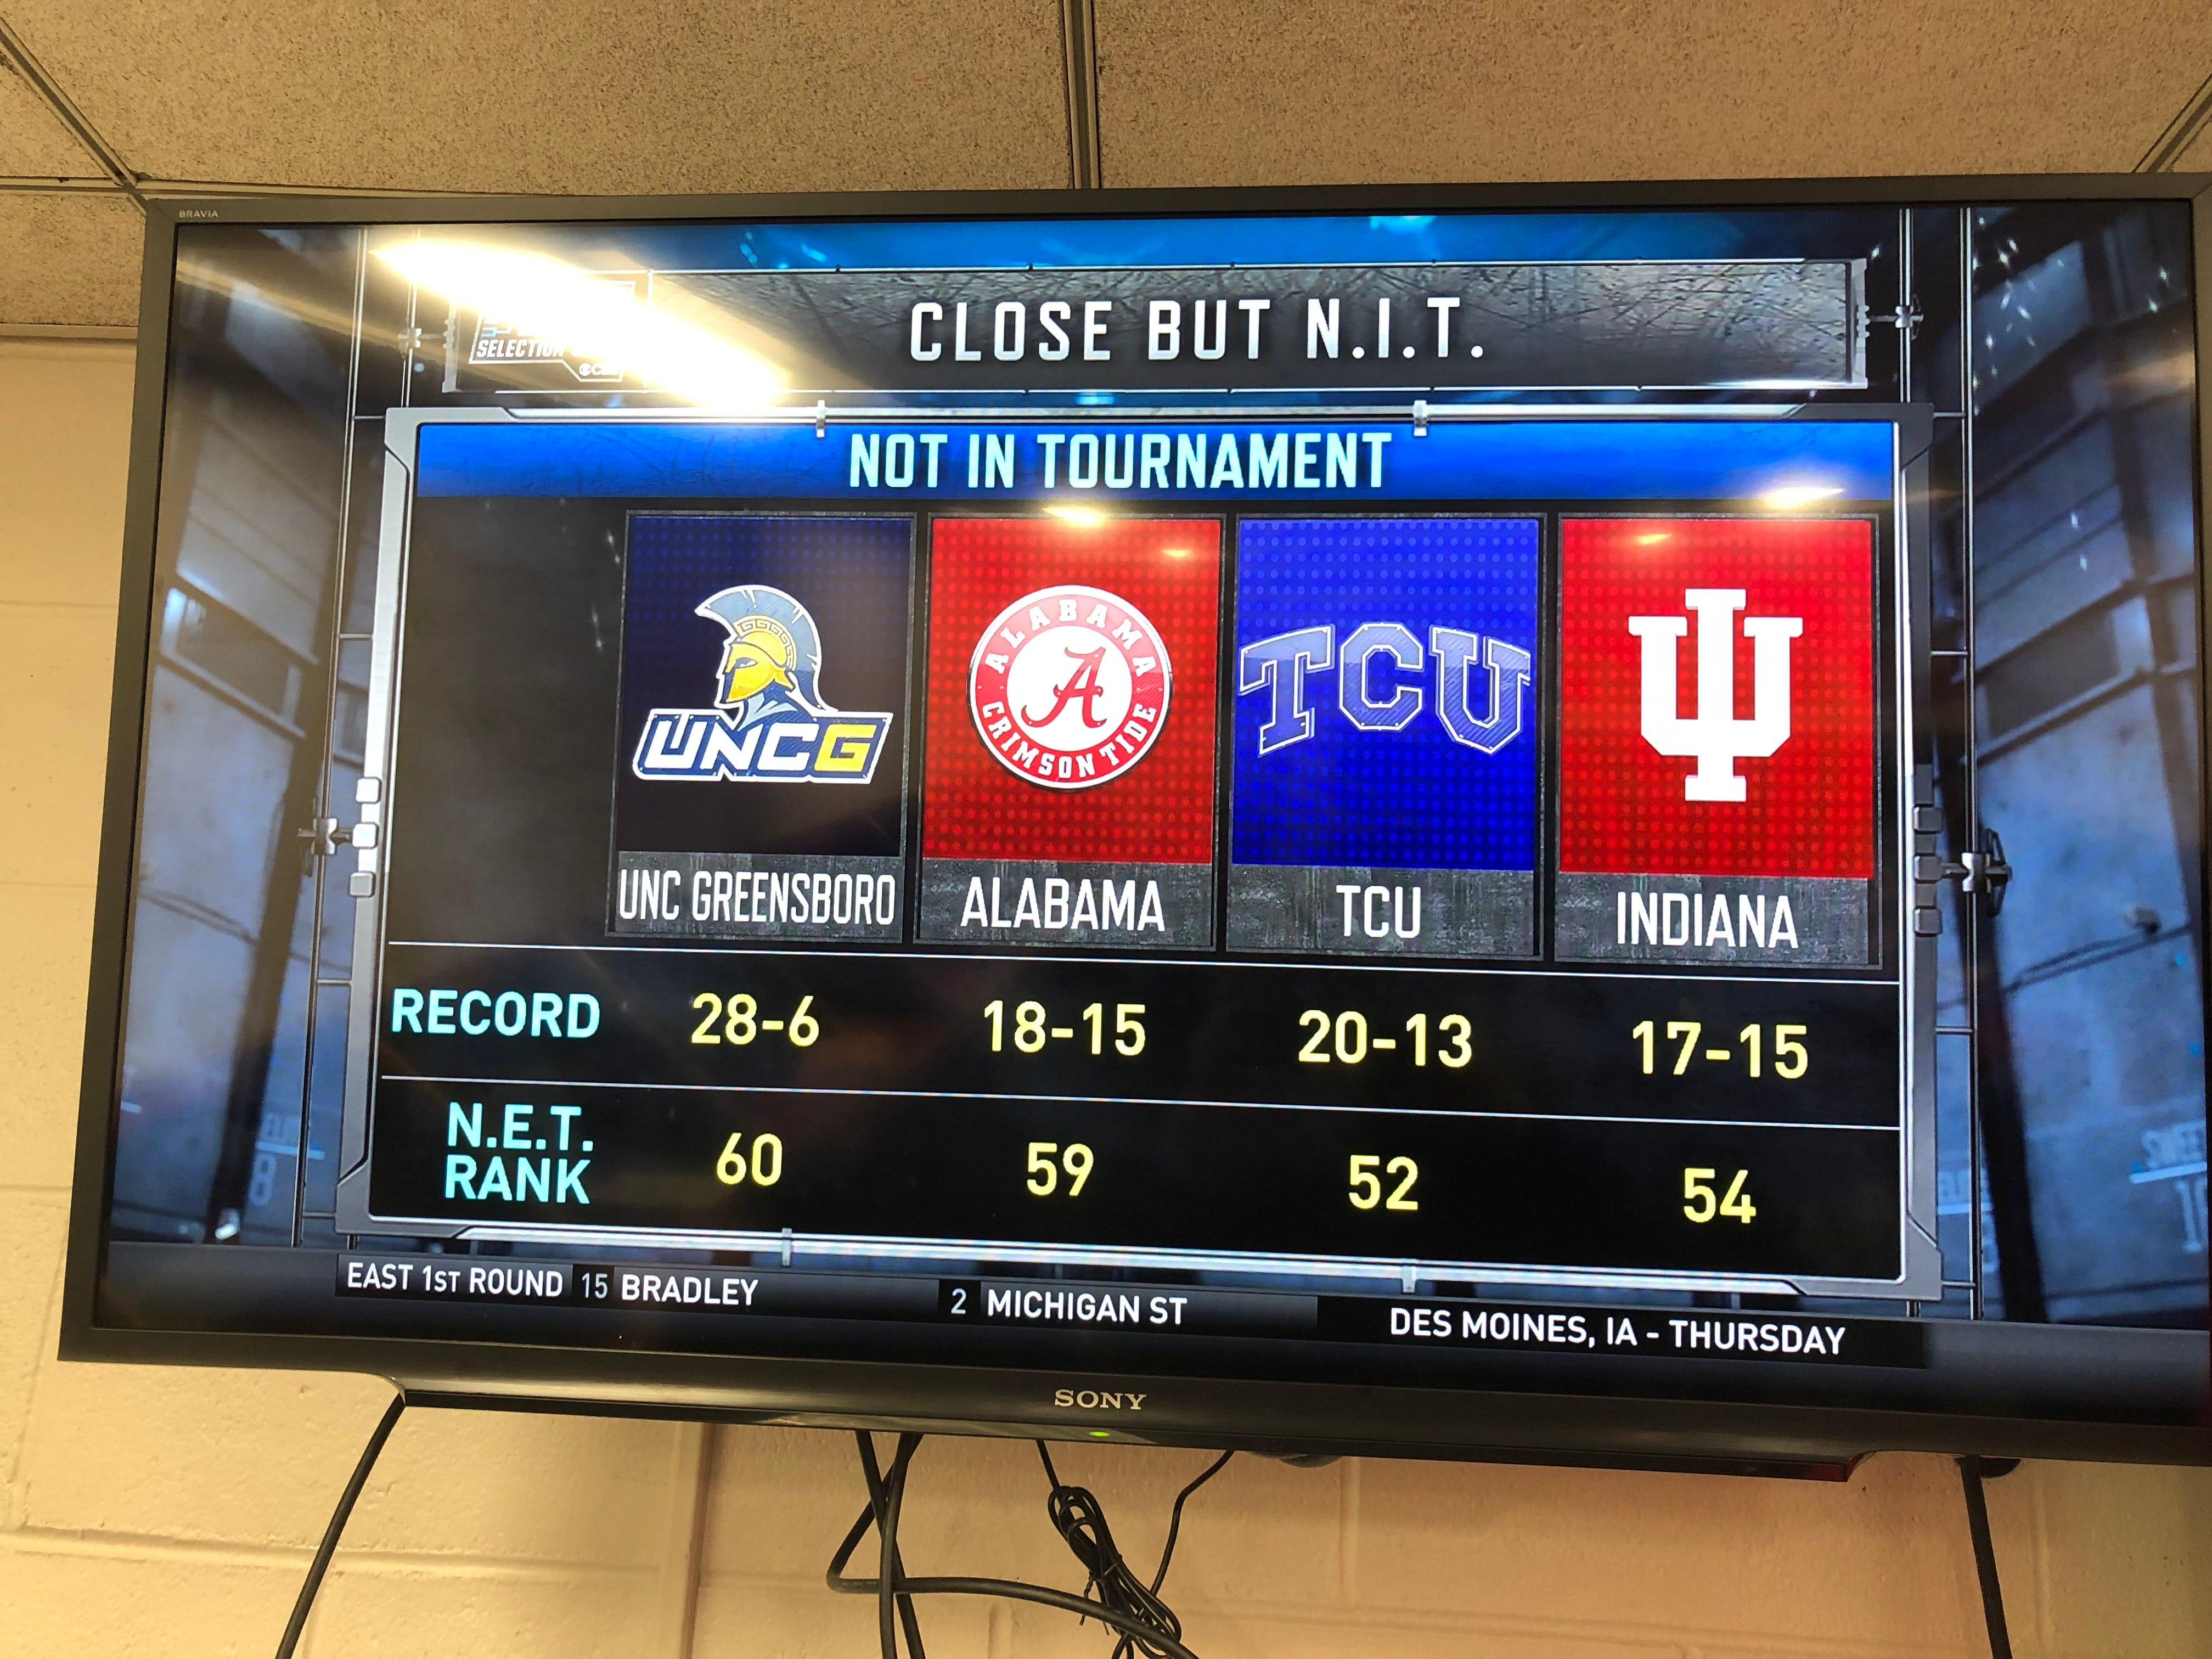 The NCAA Selection Committee reveals on March 17, 2019 which teams were the last four out. Those squads were invited to compete in the NIT in 2019